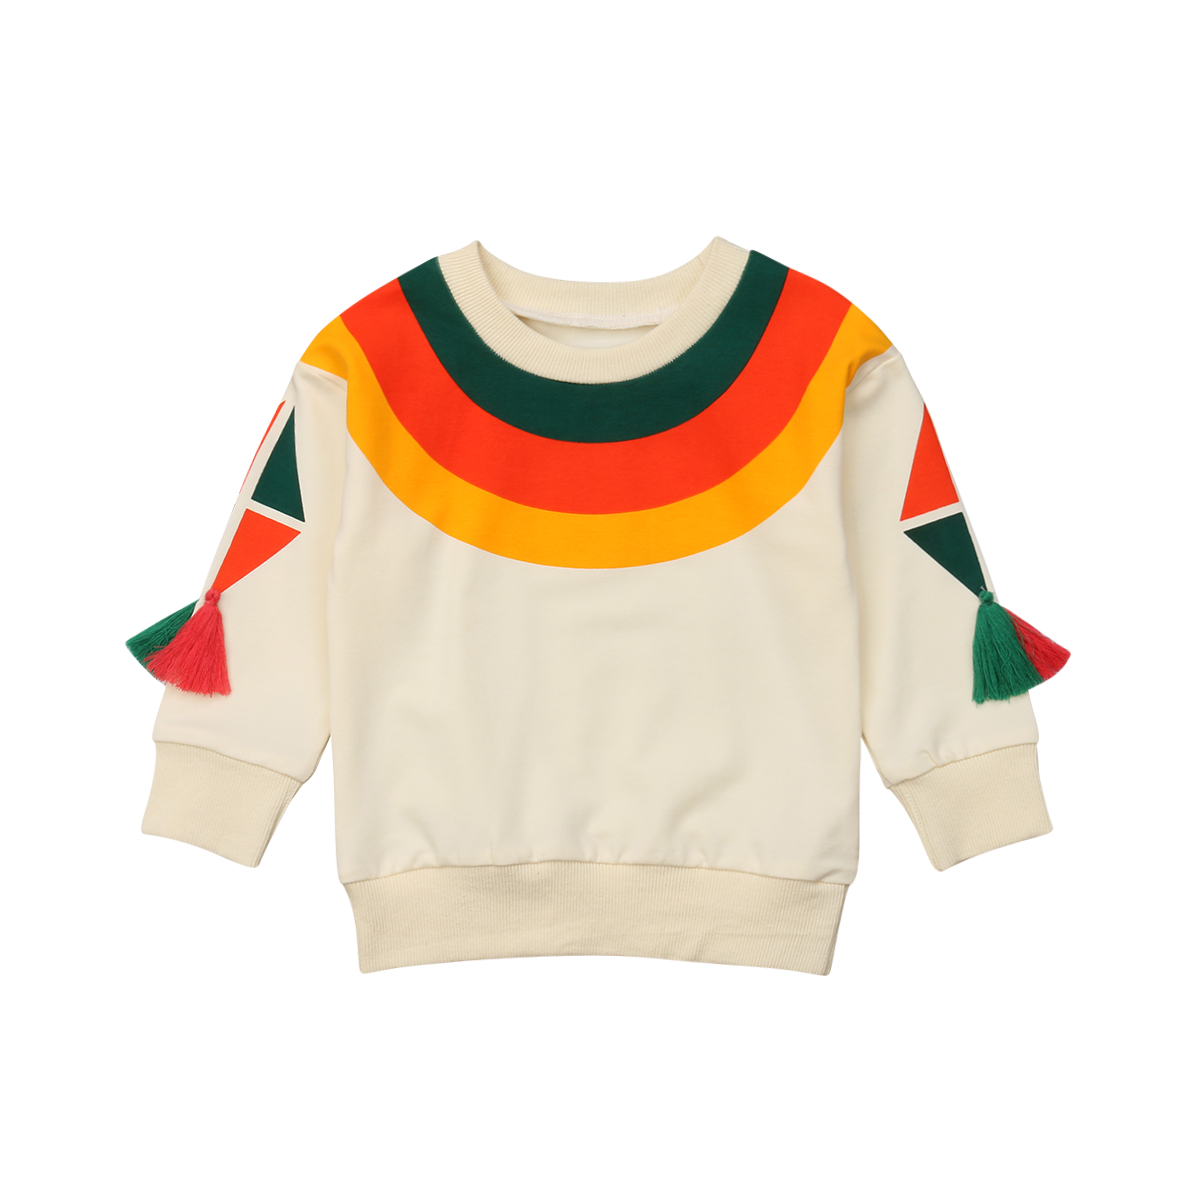 New Toddler Kids Girl Rainbow Sweatshirt Top Autumn Fashion Long Sleeve Cartoon O-Neck Girls Casual Cotton Cute Sweatshirts Tops grey casual loose round neck sweatshirt